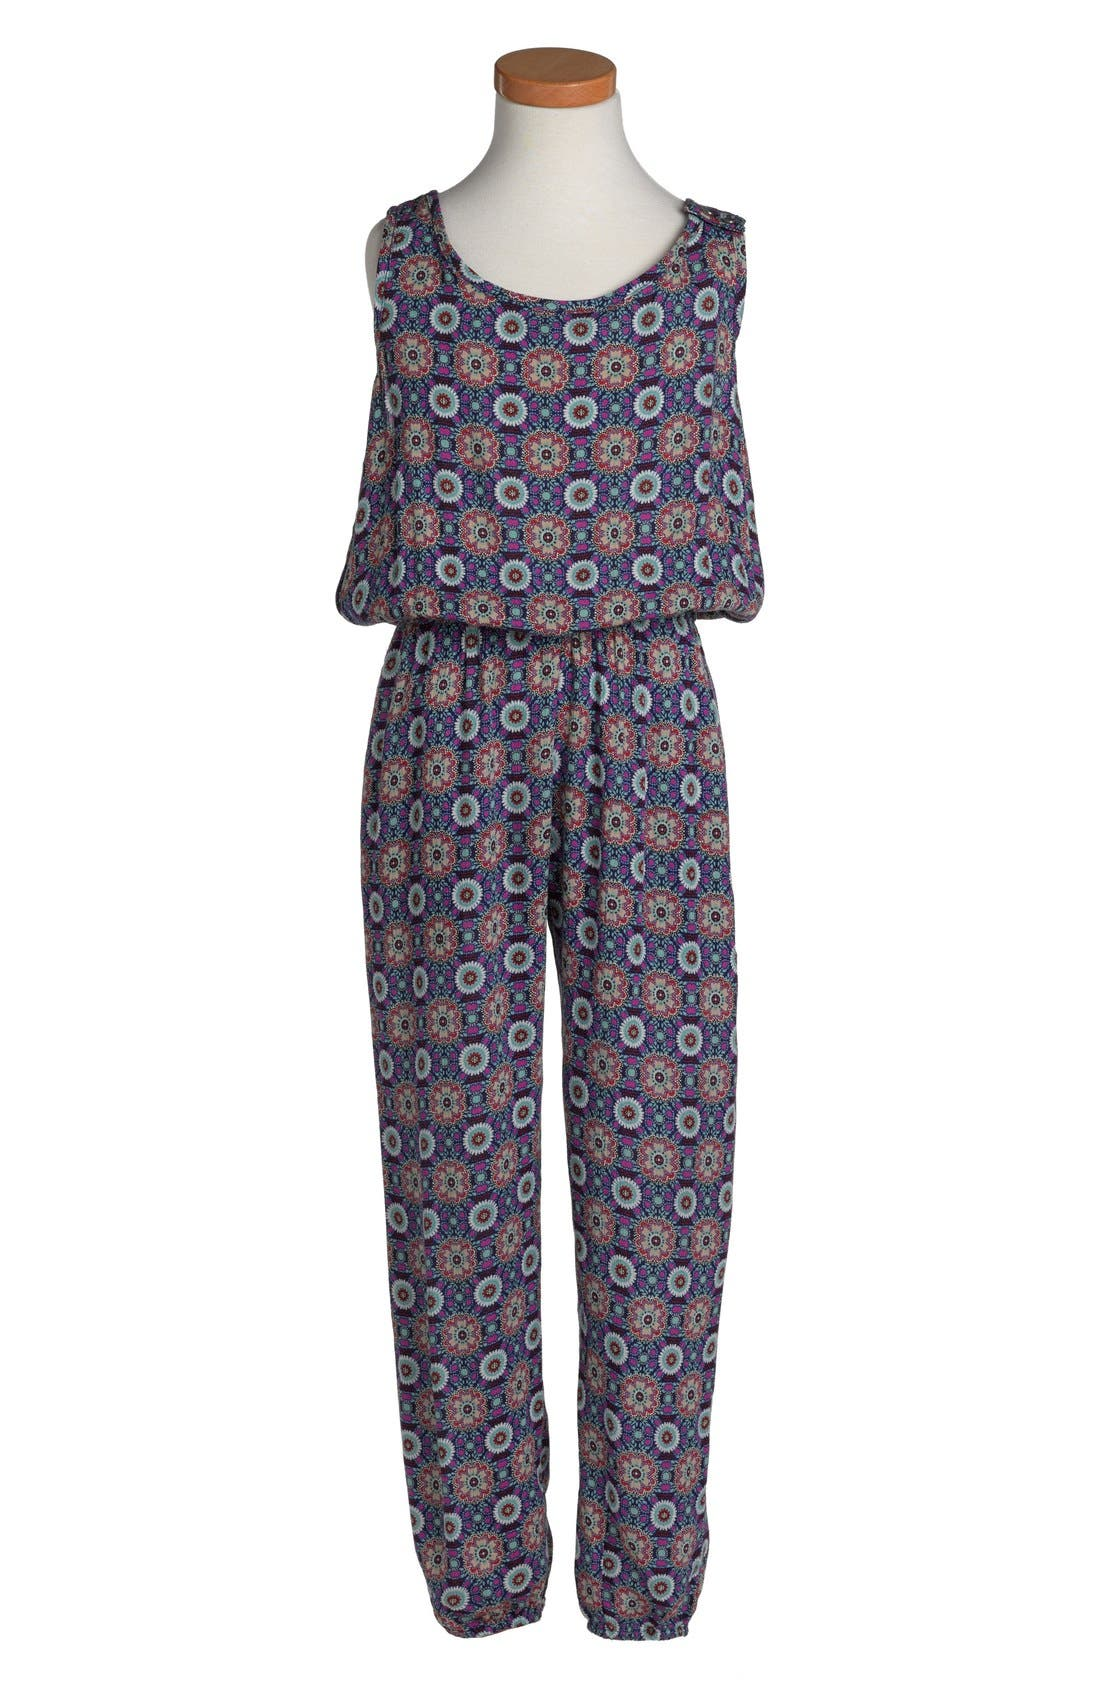 Alternate Image 1 Selected - Mia Chica Jumpsuit (Big Girls)